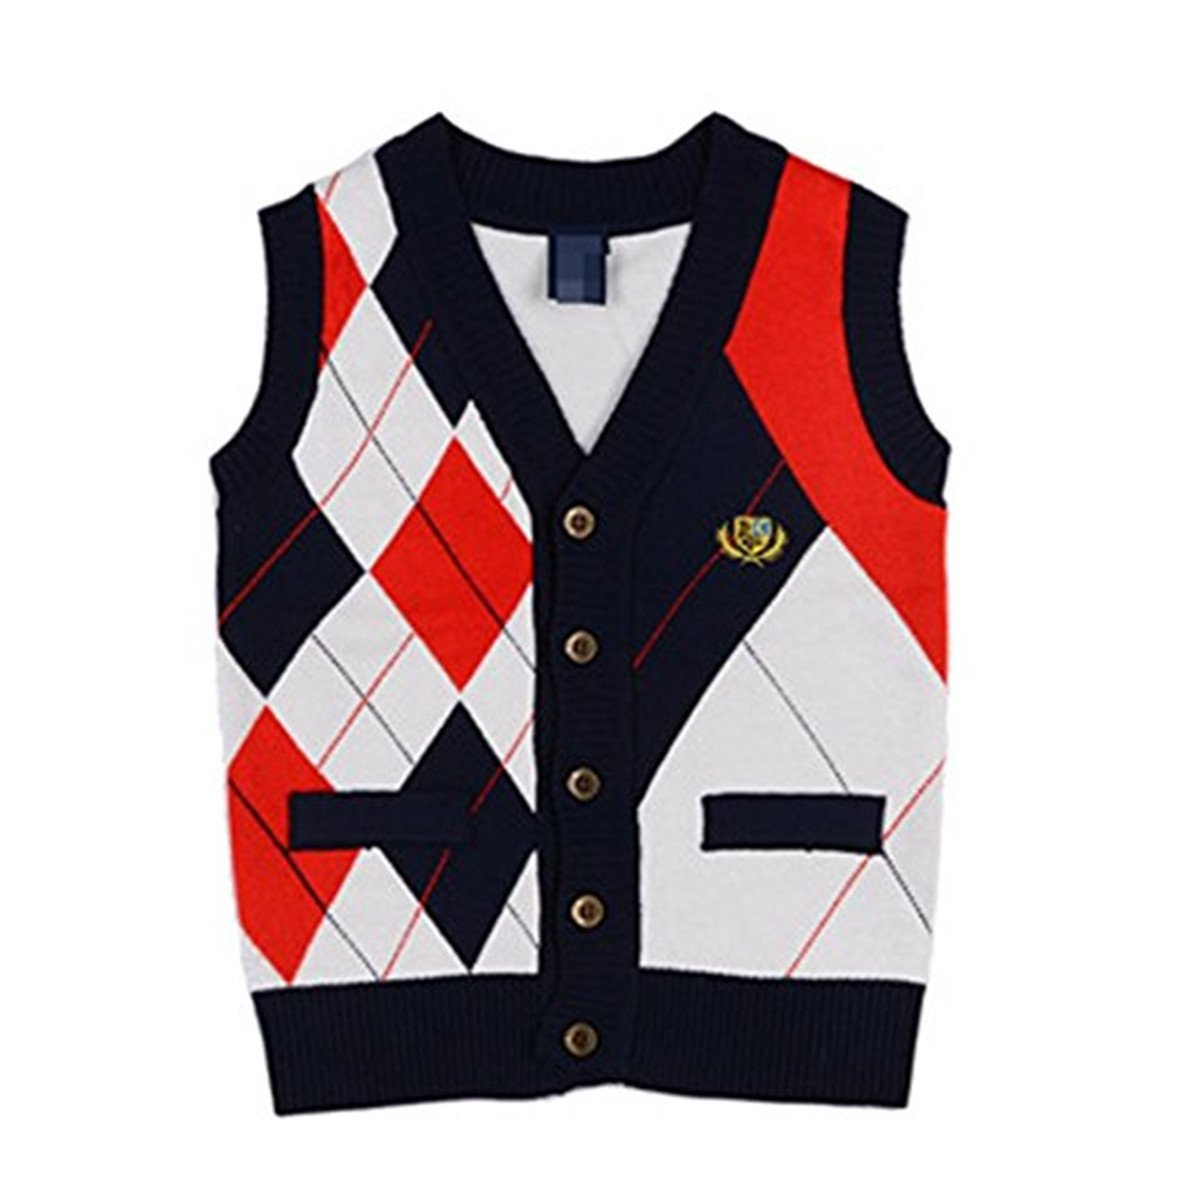 JELEUON Baby Boys Toddler V-Neck Cable Knit Pullover Sweater Cardigan Waistcoat Vest vstde001